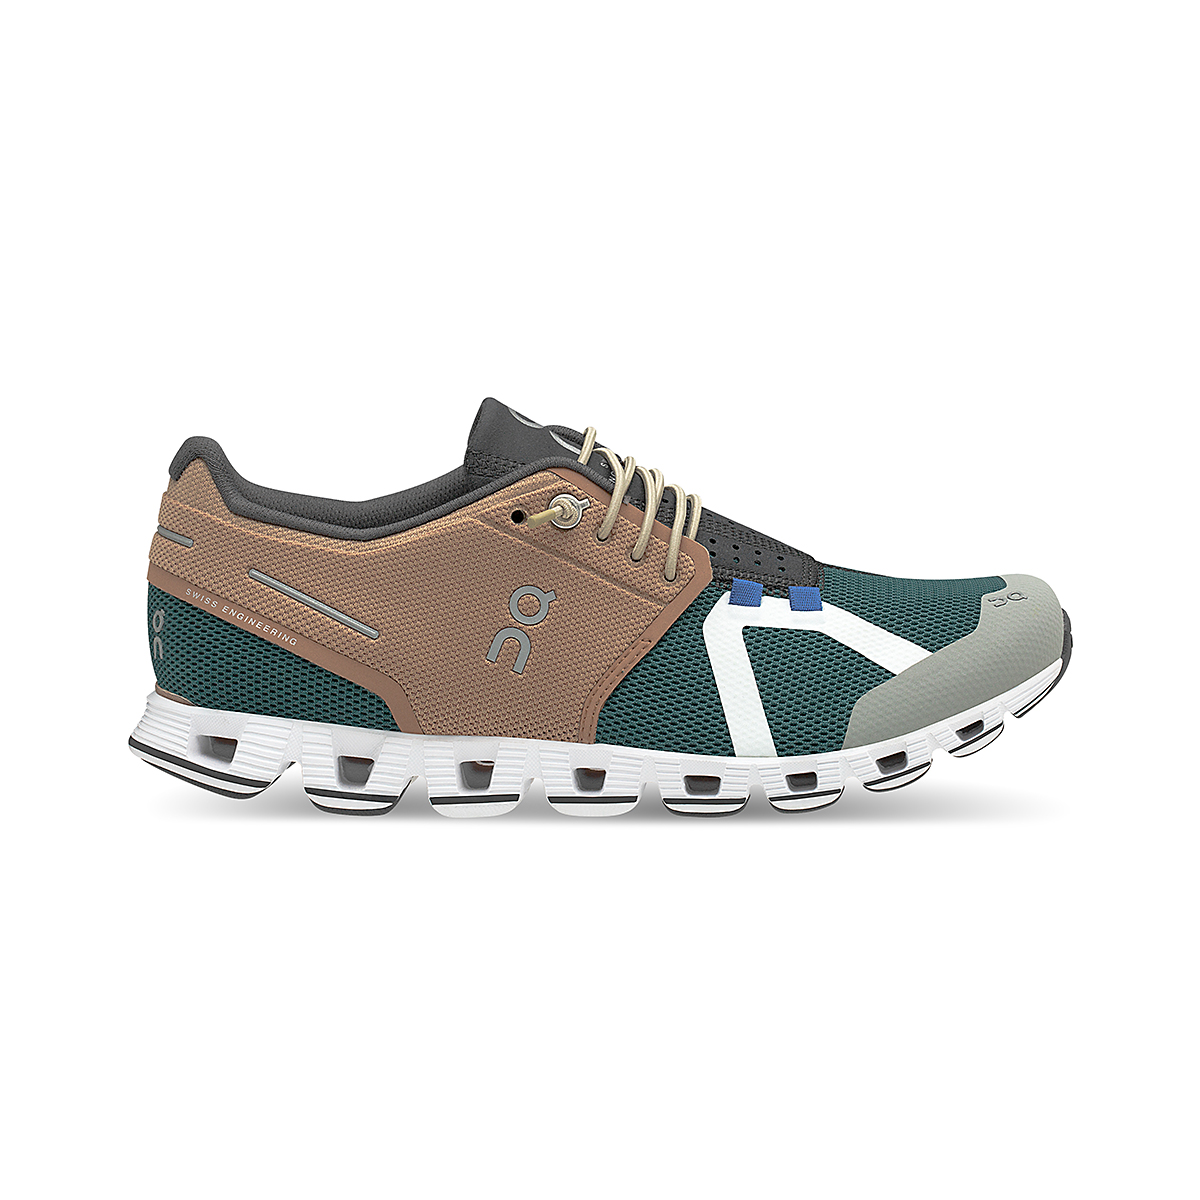 Women's On Cloud 70/30 Lifestyle Shoe - Color: Mocha/Evergreen - Size: 5 - Width: Regular, Mocha/Evergreen, large, image 1